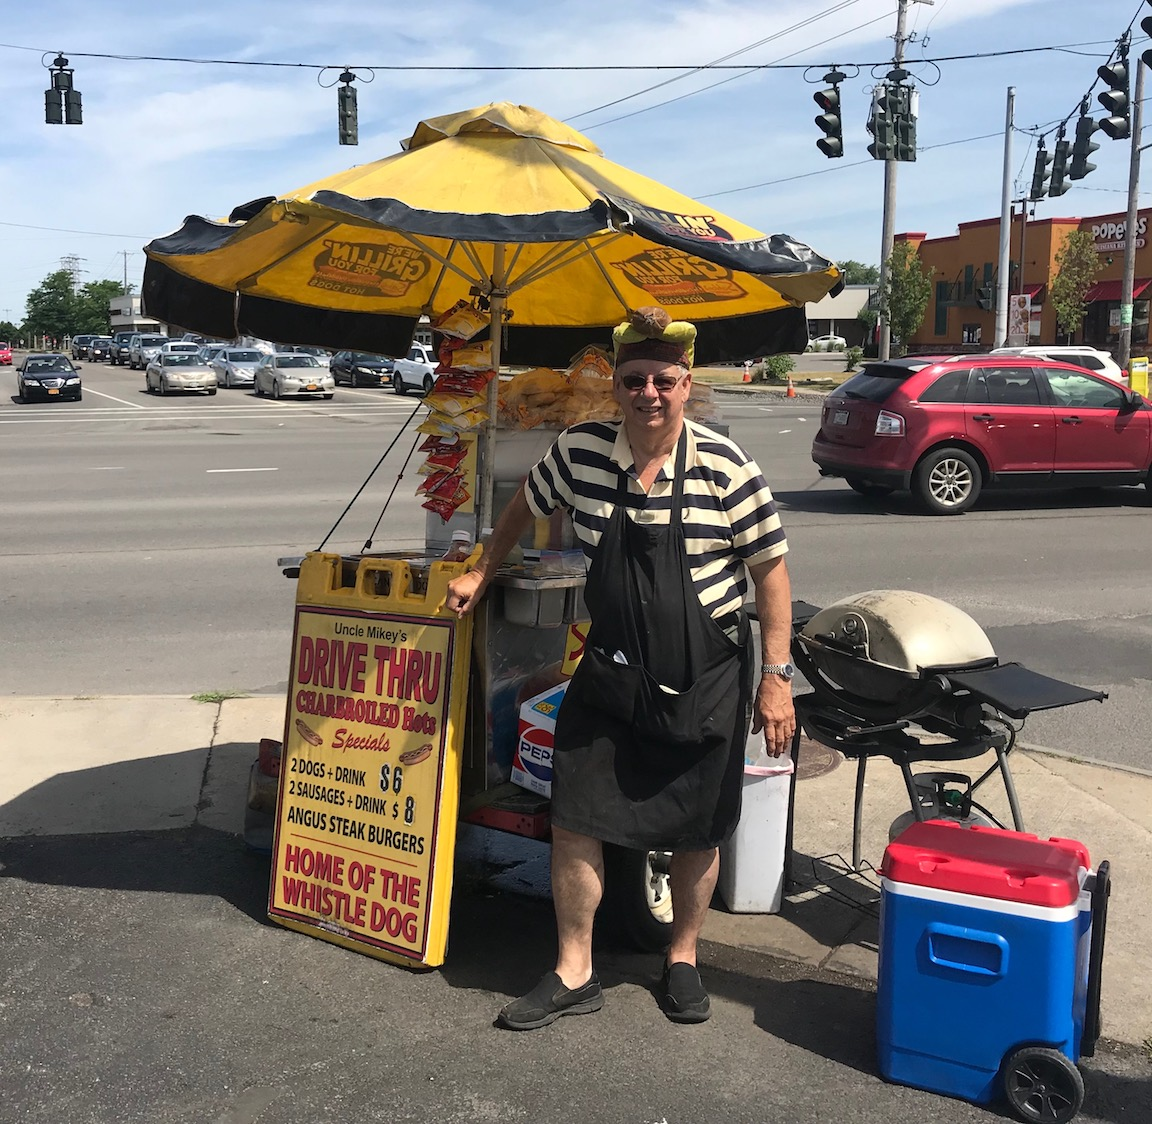 Mike Heigel, in his famous hot dog cap, stands by Uncle Mikey's Drive Thru hot dog stand at the corner of Military Road and Niagara Falls Boulevard. (Photo by David Yarger)